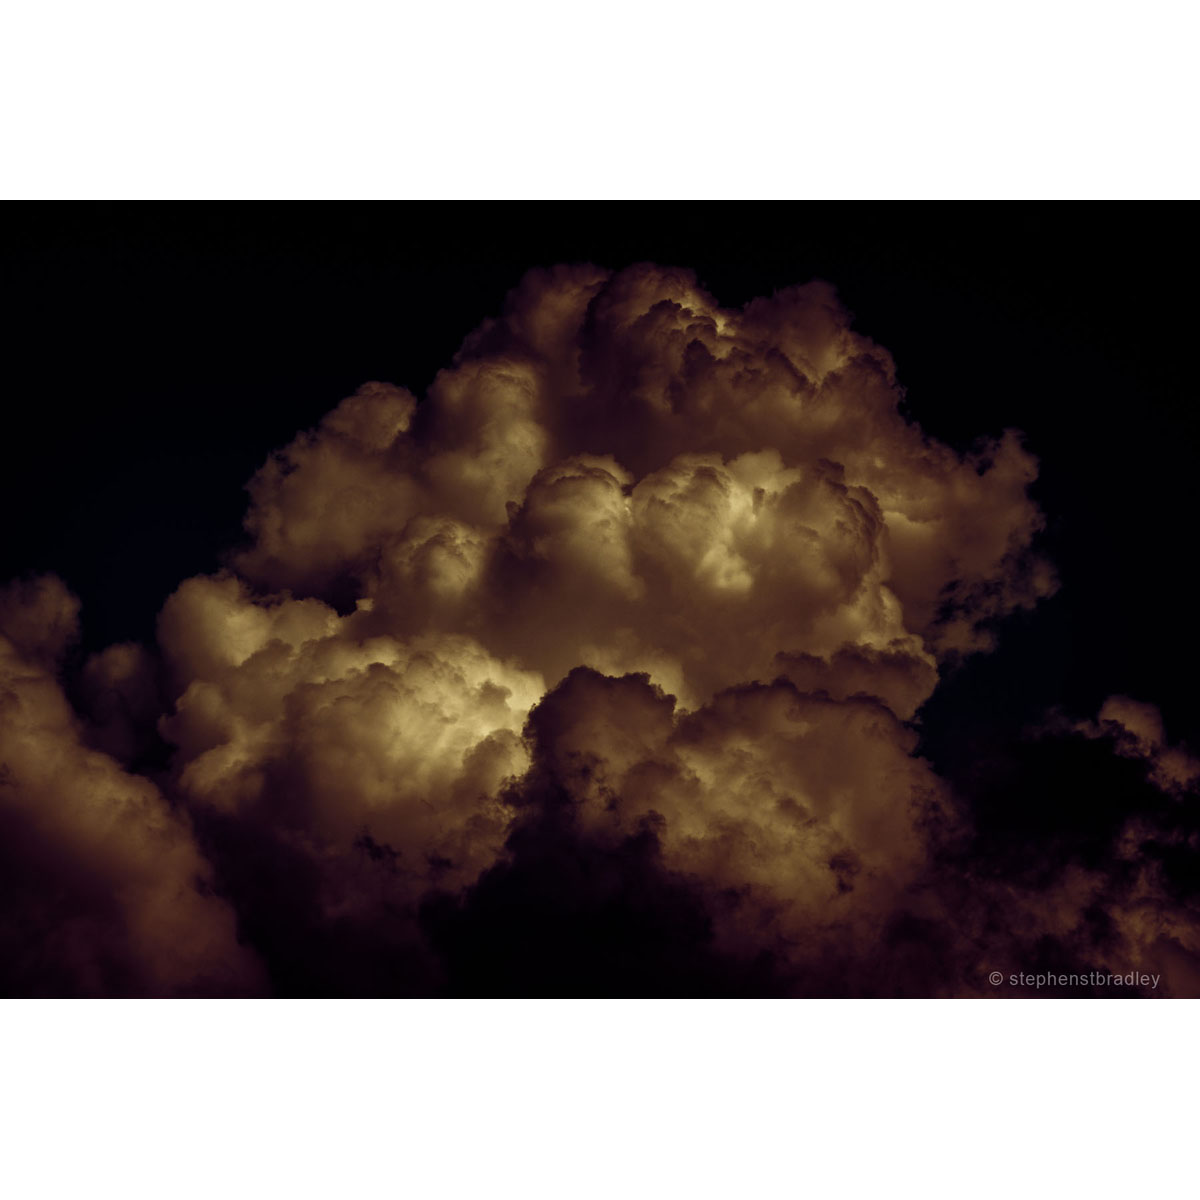 Burnt Marshmallow - limited edition photo of clouds over Newtownabbey by photographer Stephen S T Bradley